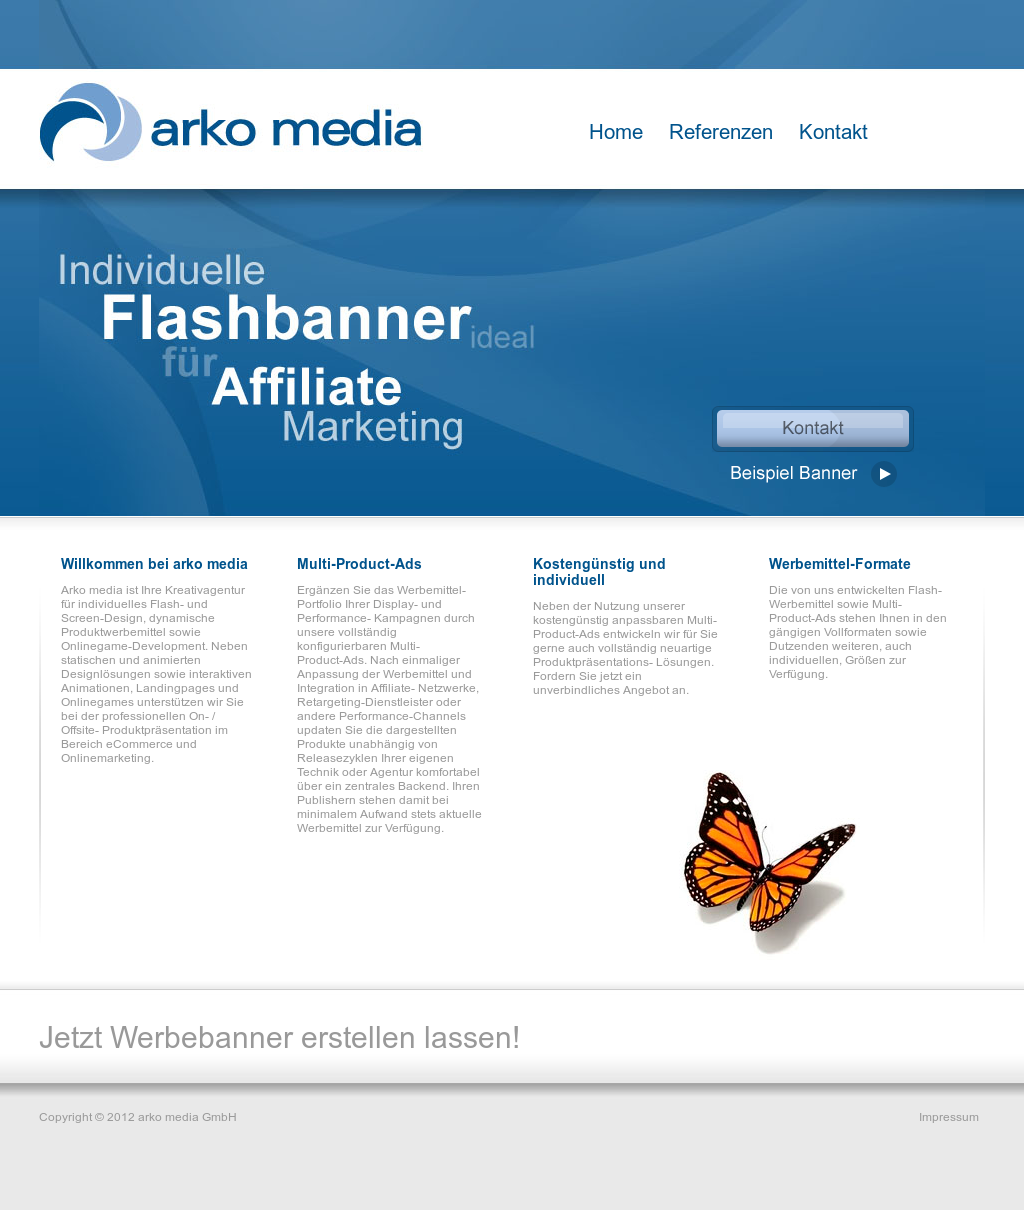 arko media website history - Produktprasentation Beispiel